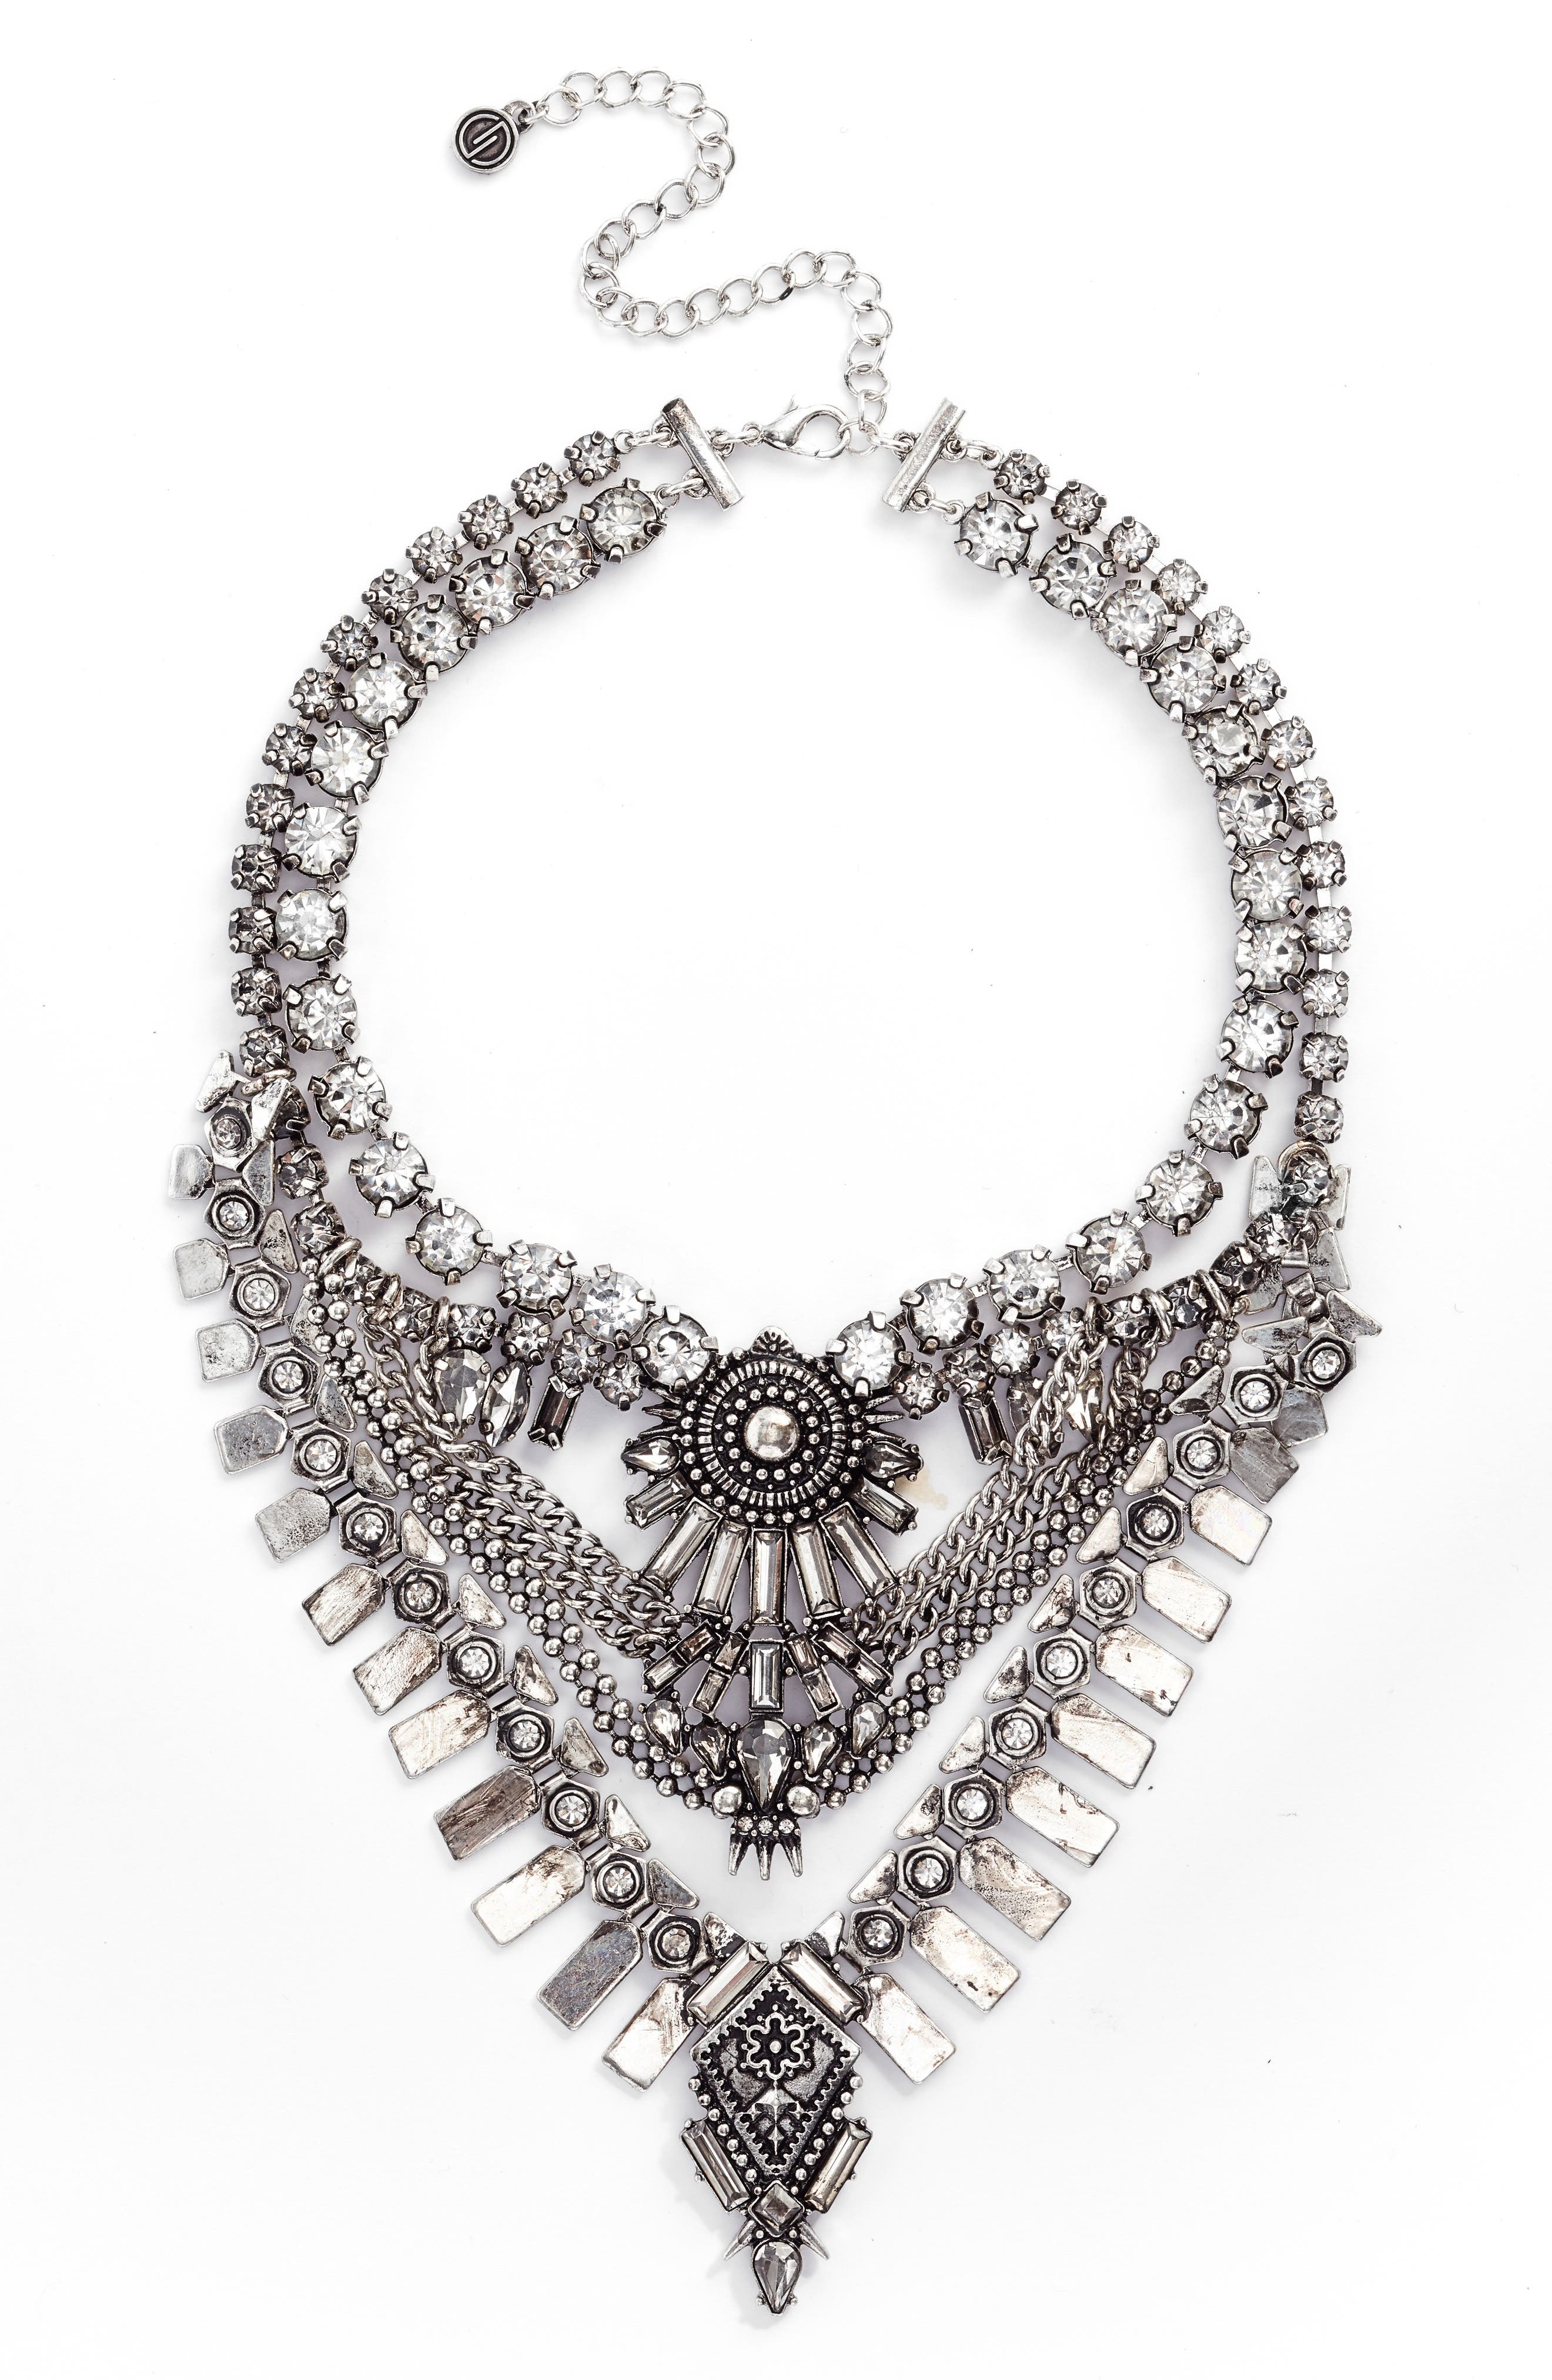 Main Image - DLNLX BY DYLANLEX Curb Chain & Crystal Necklace